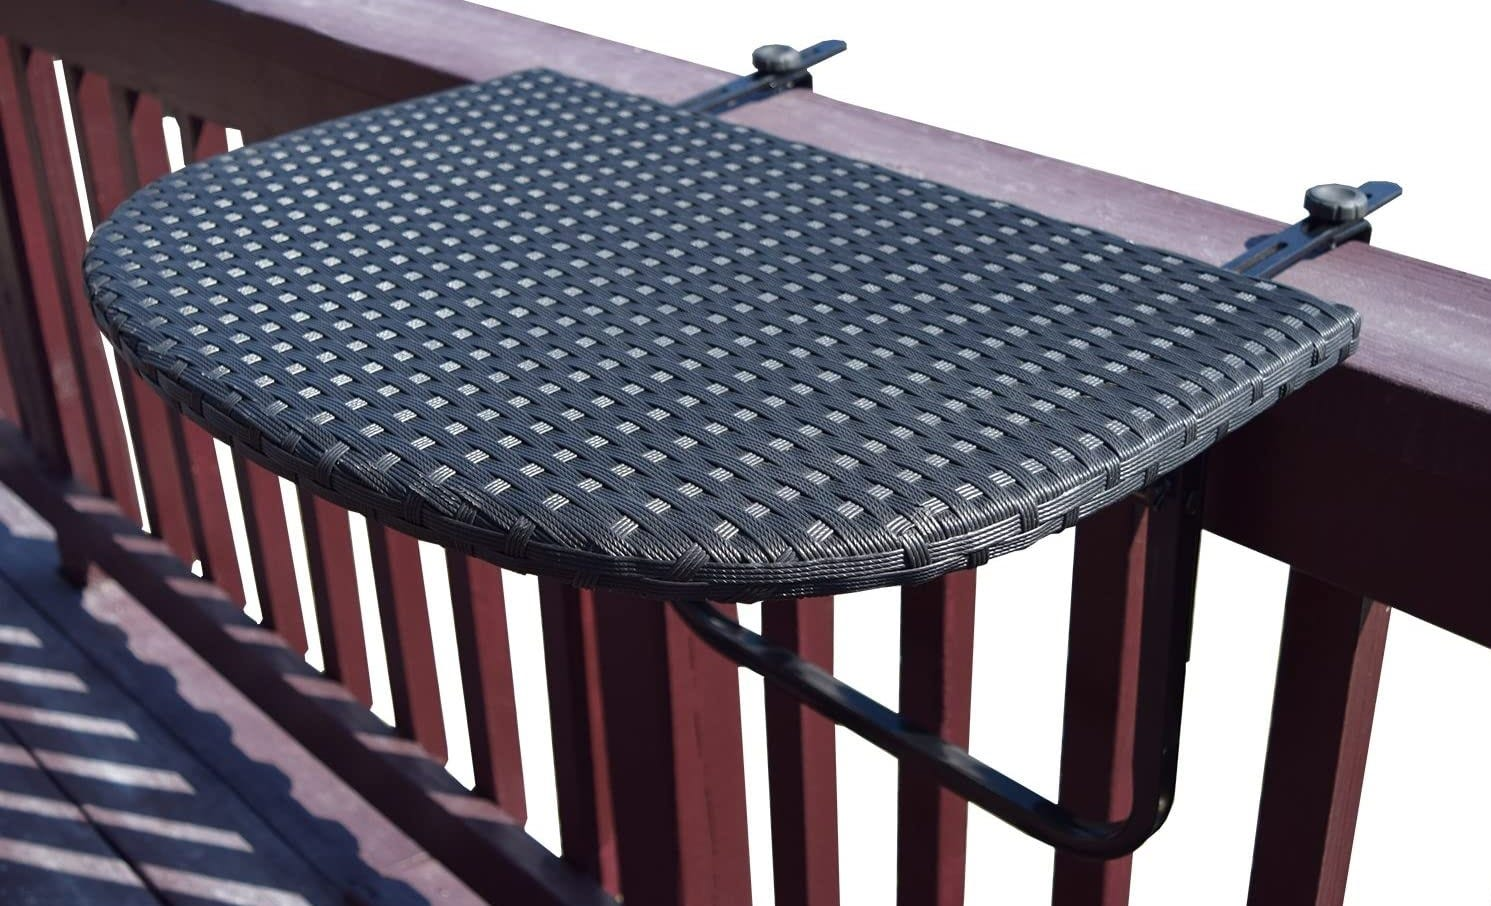 The Oakland Living Balcony Railing Wicker Table in black attached to a balcony rail.